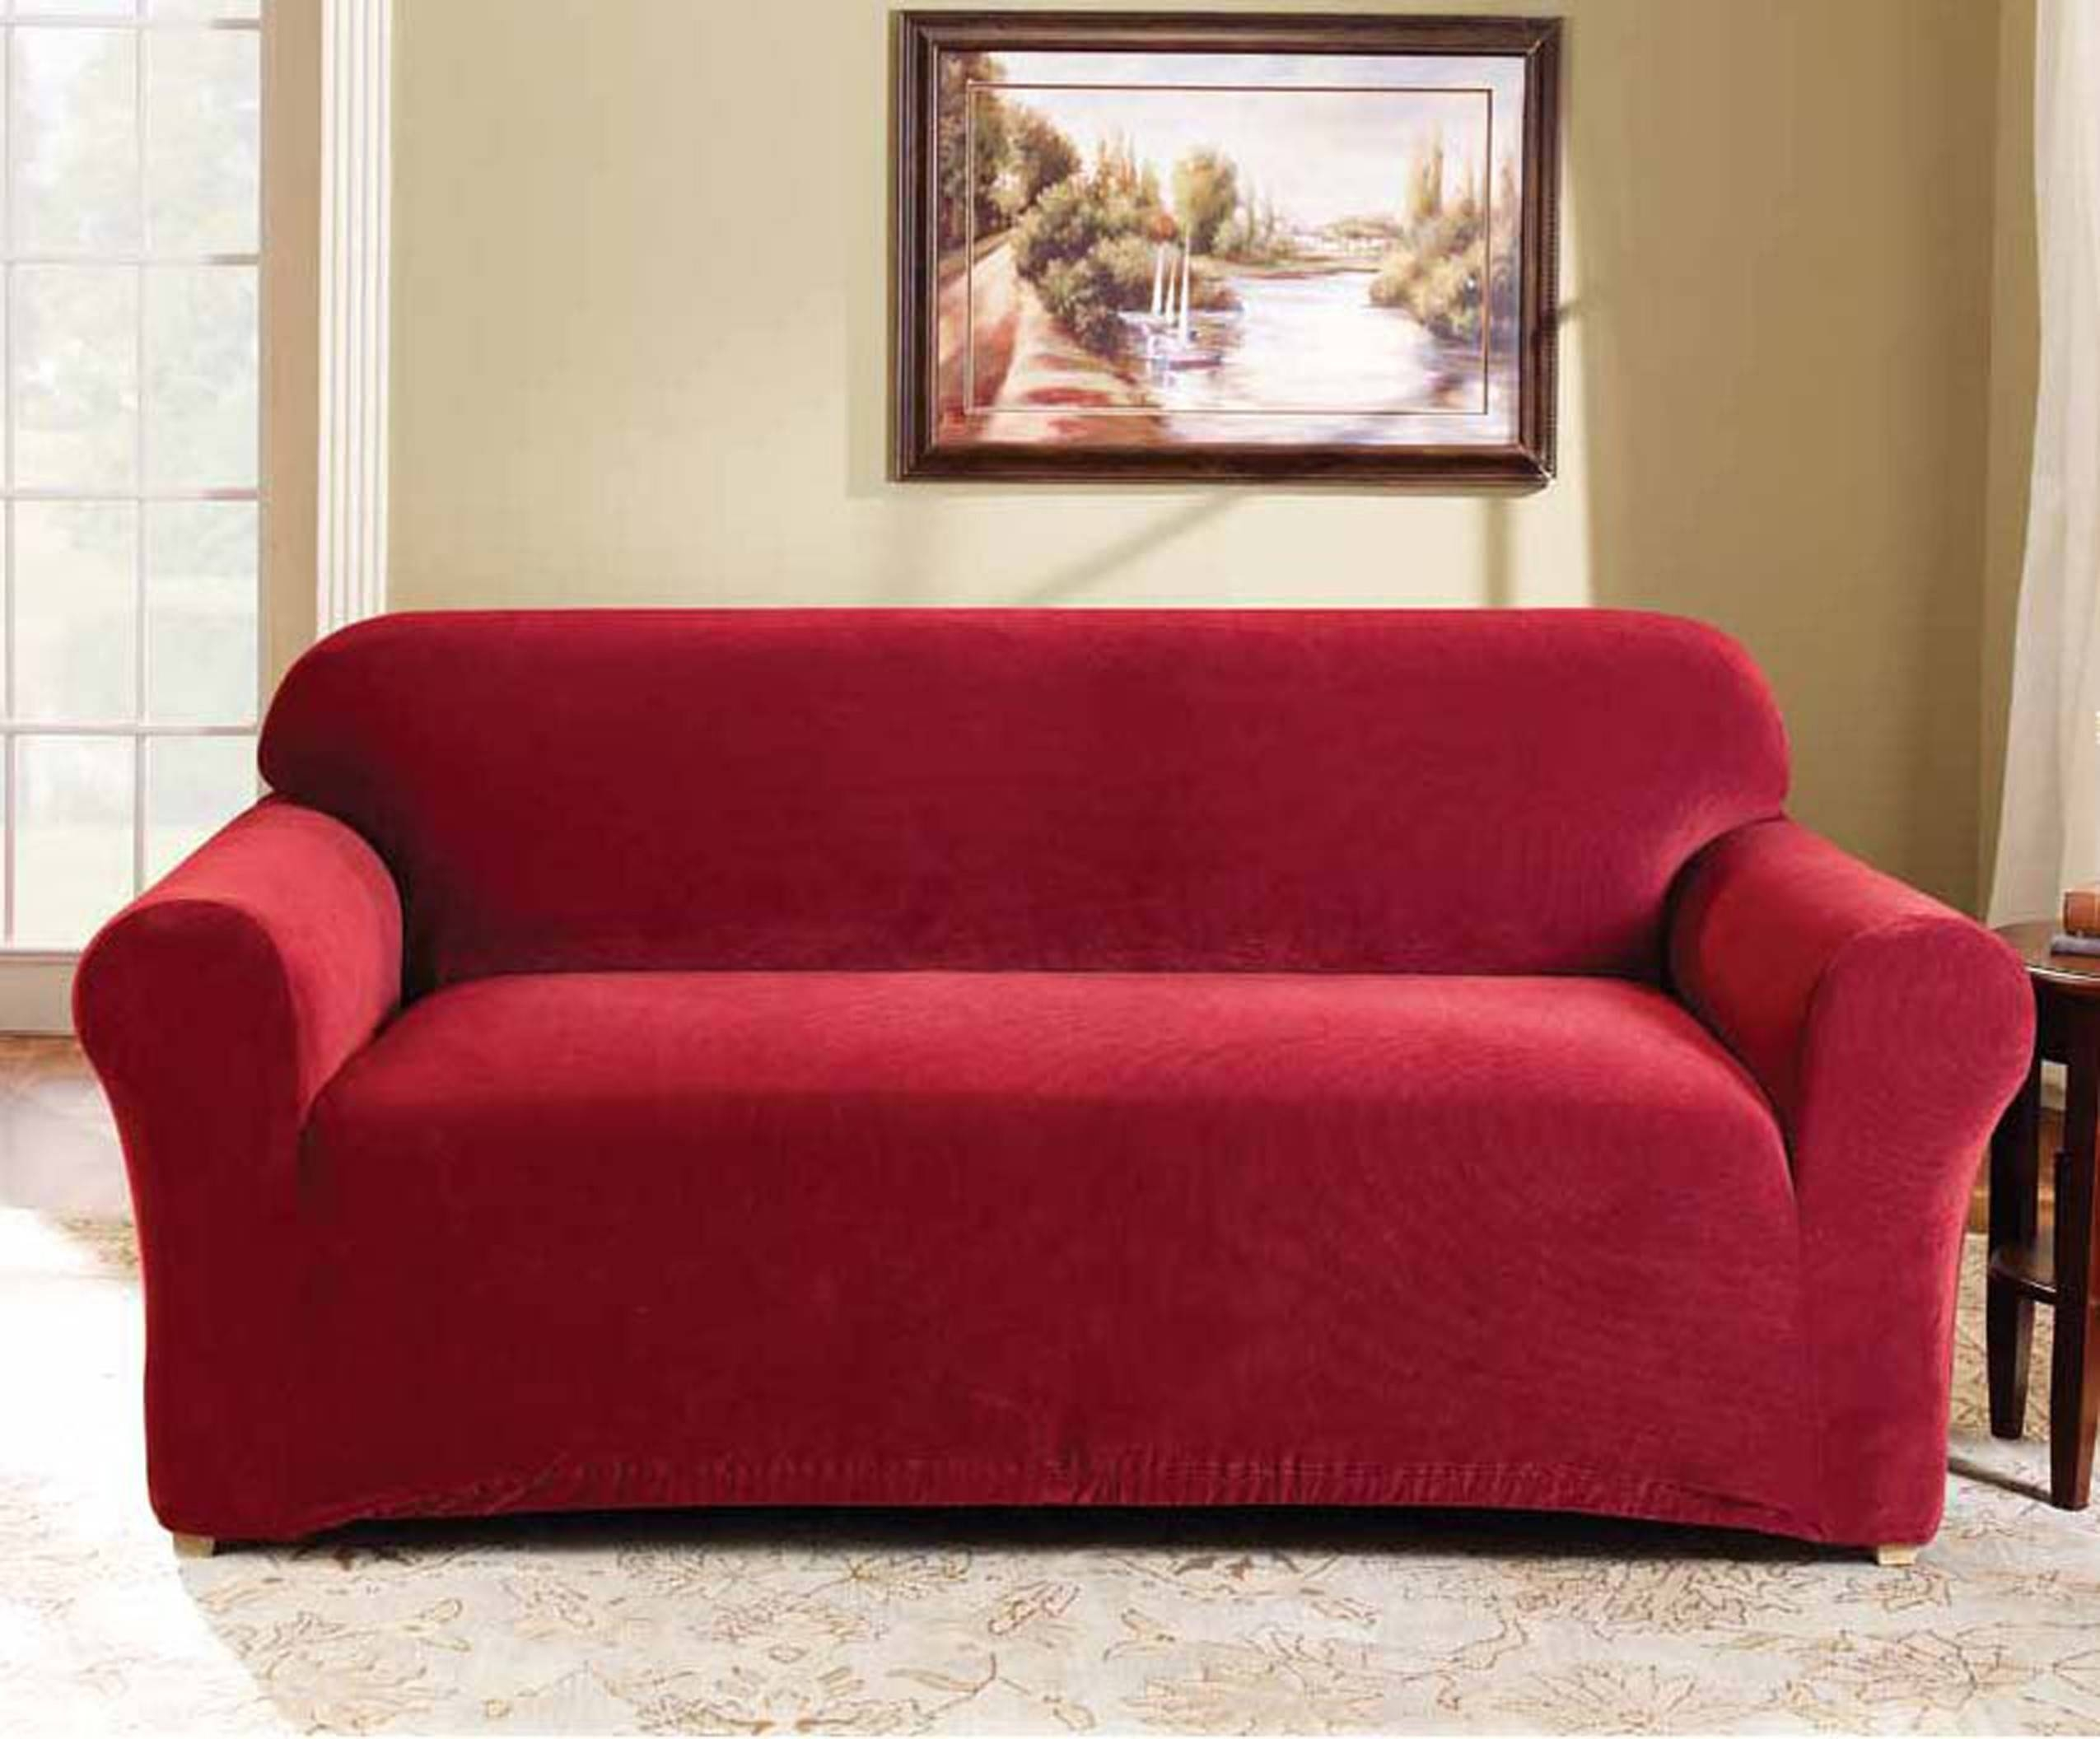 Furniture & Sofa: Stunning Sure Fit Sofa Covers Design For for Sofa And Chair Slipcovers (Image 6 of 15)